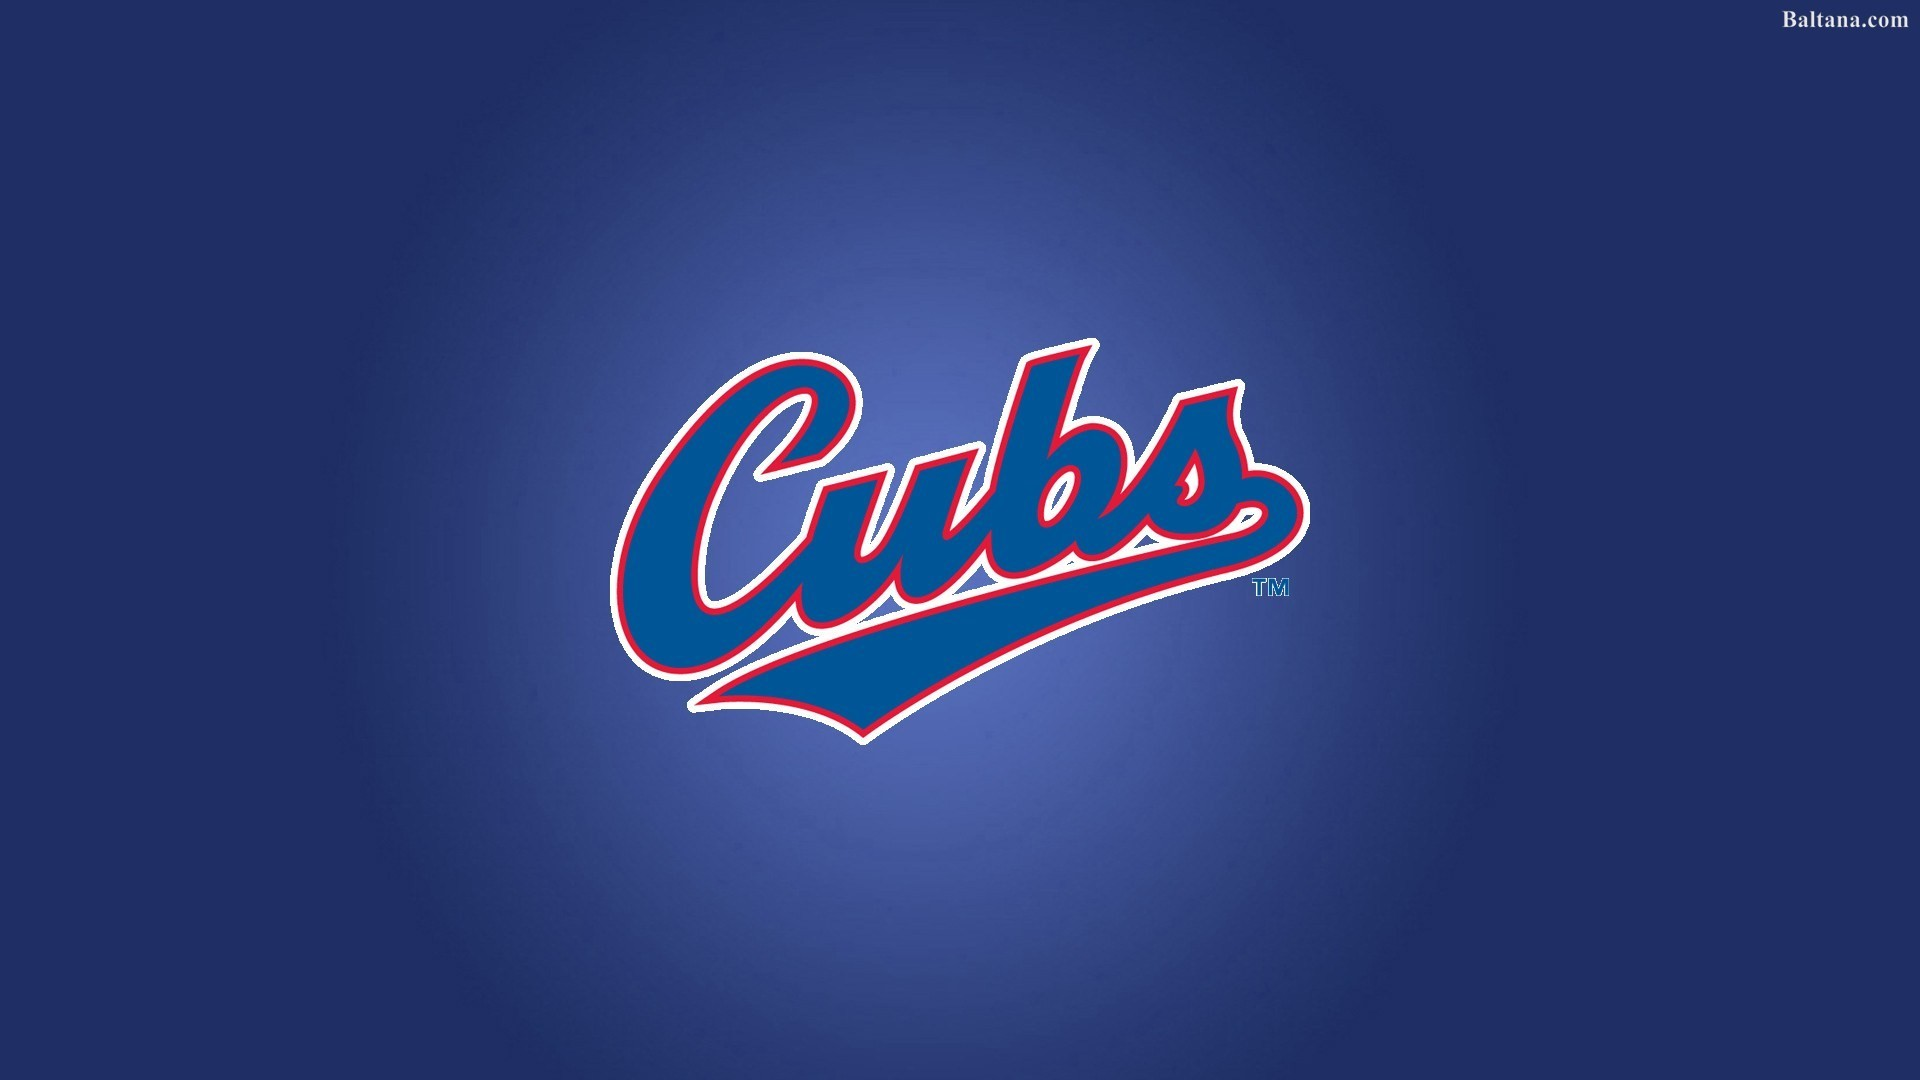 Chicago Cubs Wallpaper Iphone X Cool Chicago Cubs Logo Wallpaper 68 Images